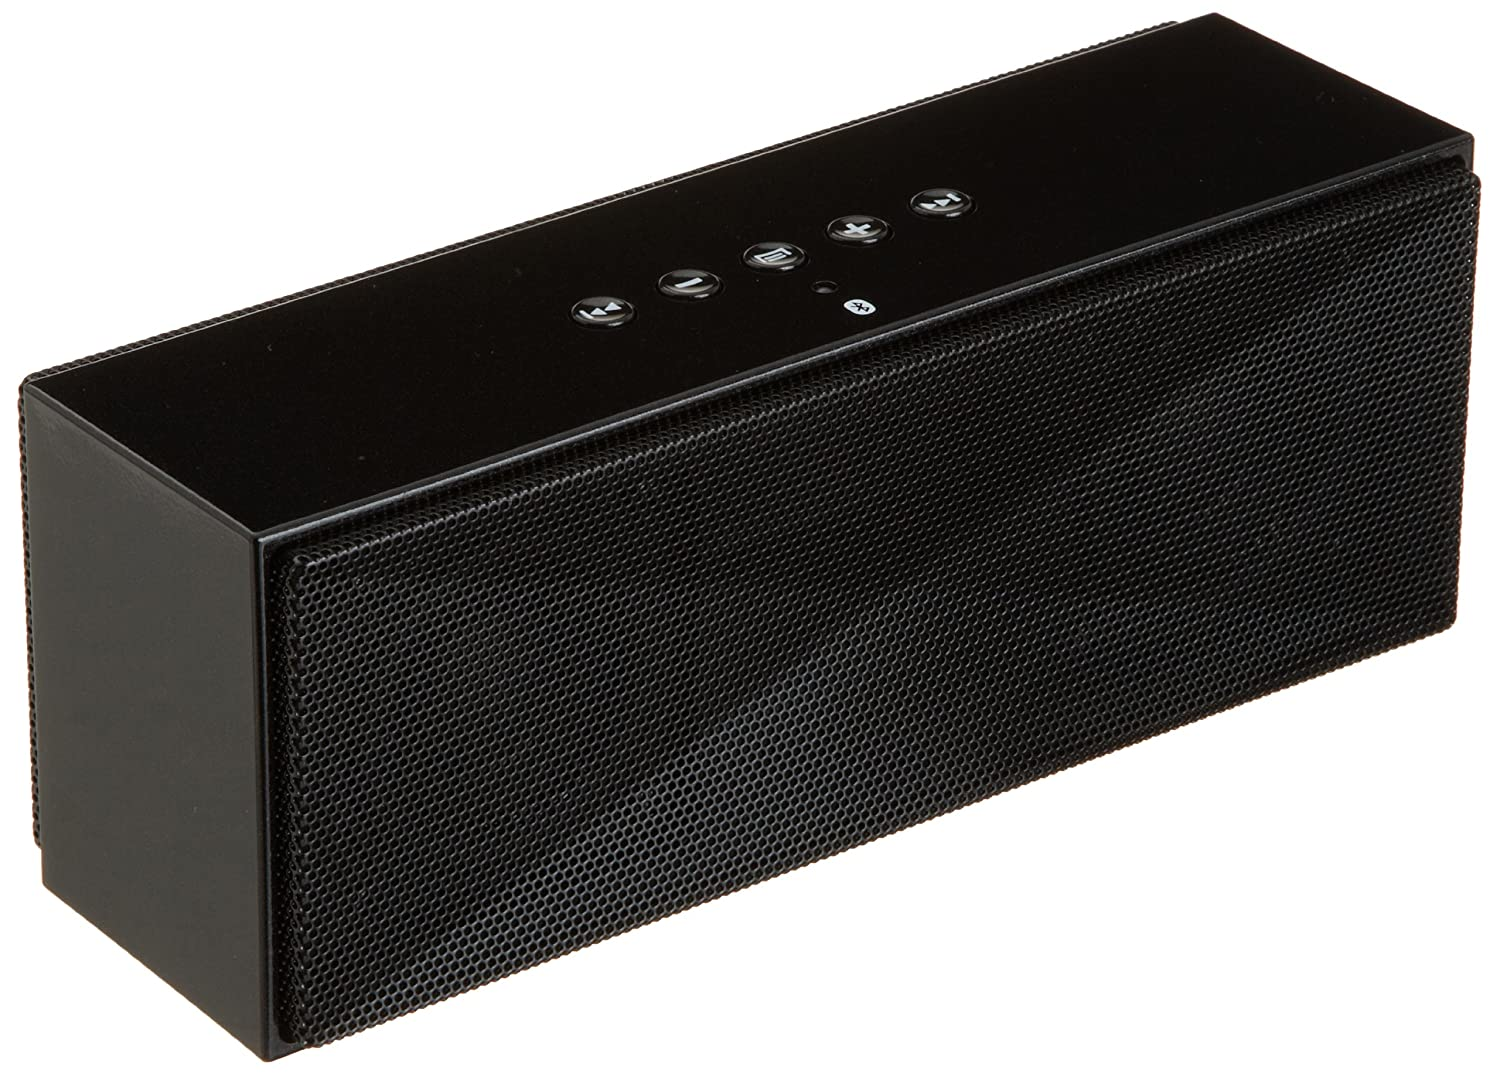 AmazonBasics Portable Bluetooth Speaker